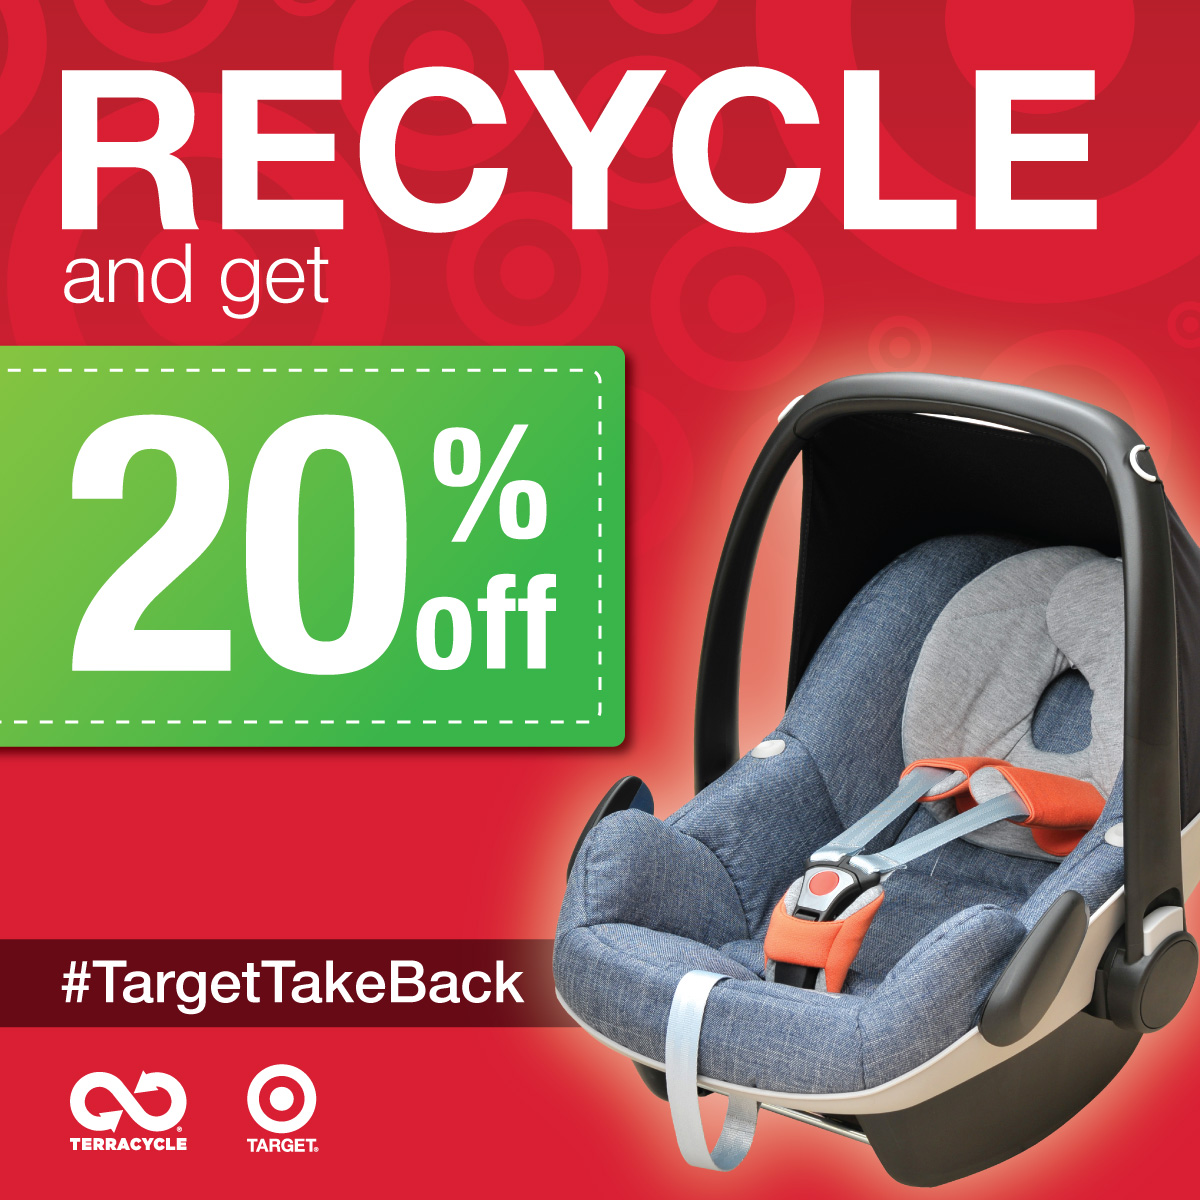 Baby Car Seat At Target Recycle Used Car Seats At Minnesota Target Stores